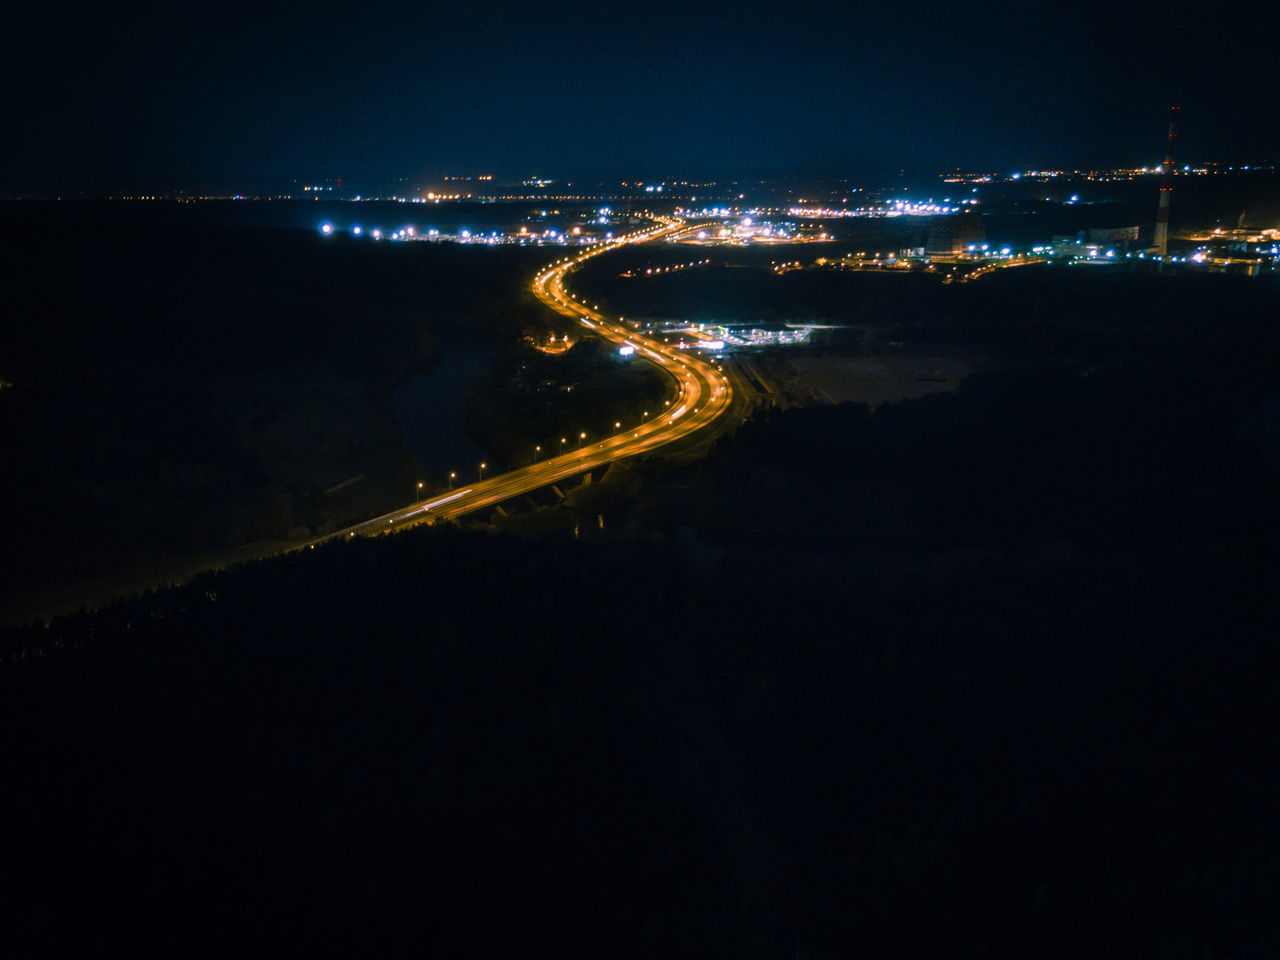 Winding road - at night from drone Areal City City City Lights Cityscape Dark Distance Dji Drone  Forest Highway Horizon Illuminated Long Exposure Mavic Mavic Pro Nature Night Night Lights Nightphotography Road Sky Town Trails Winding Road